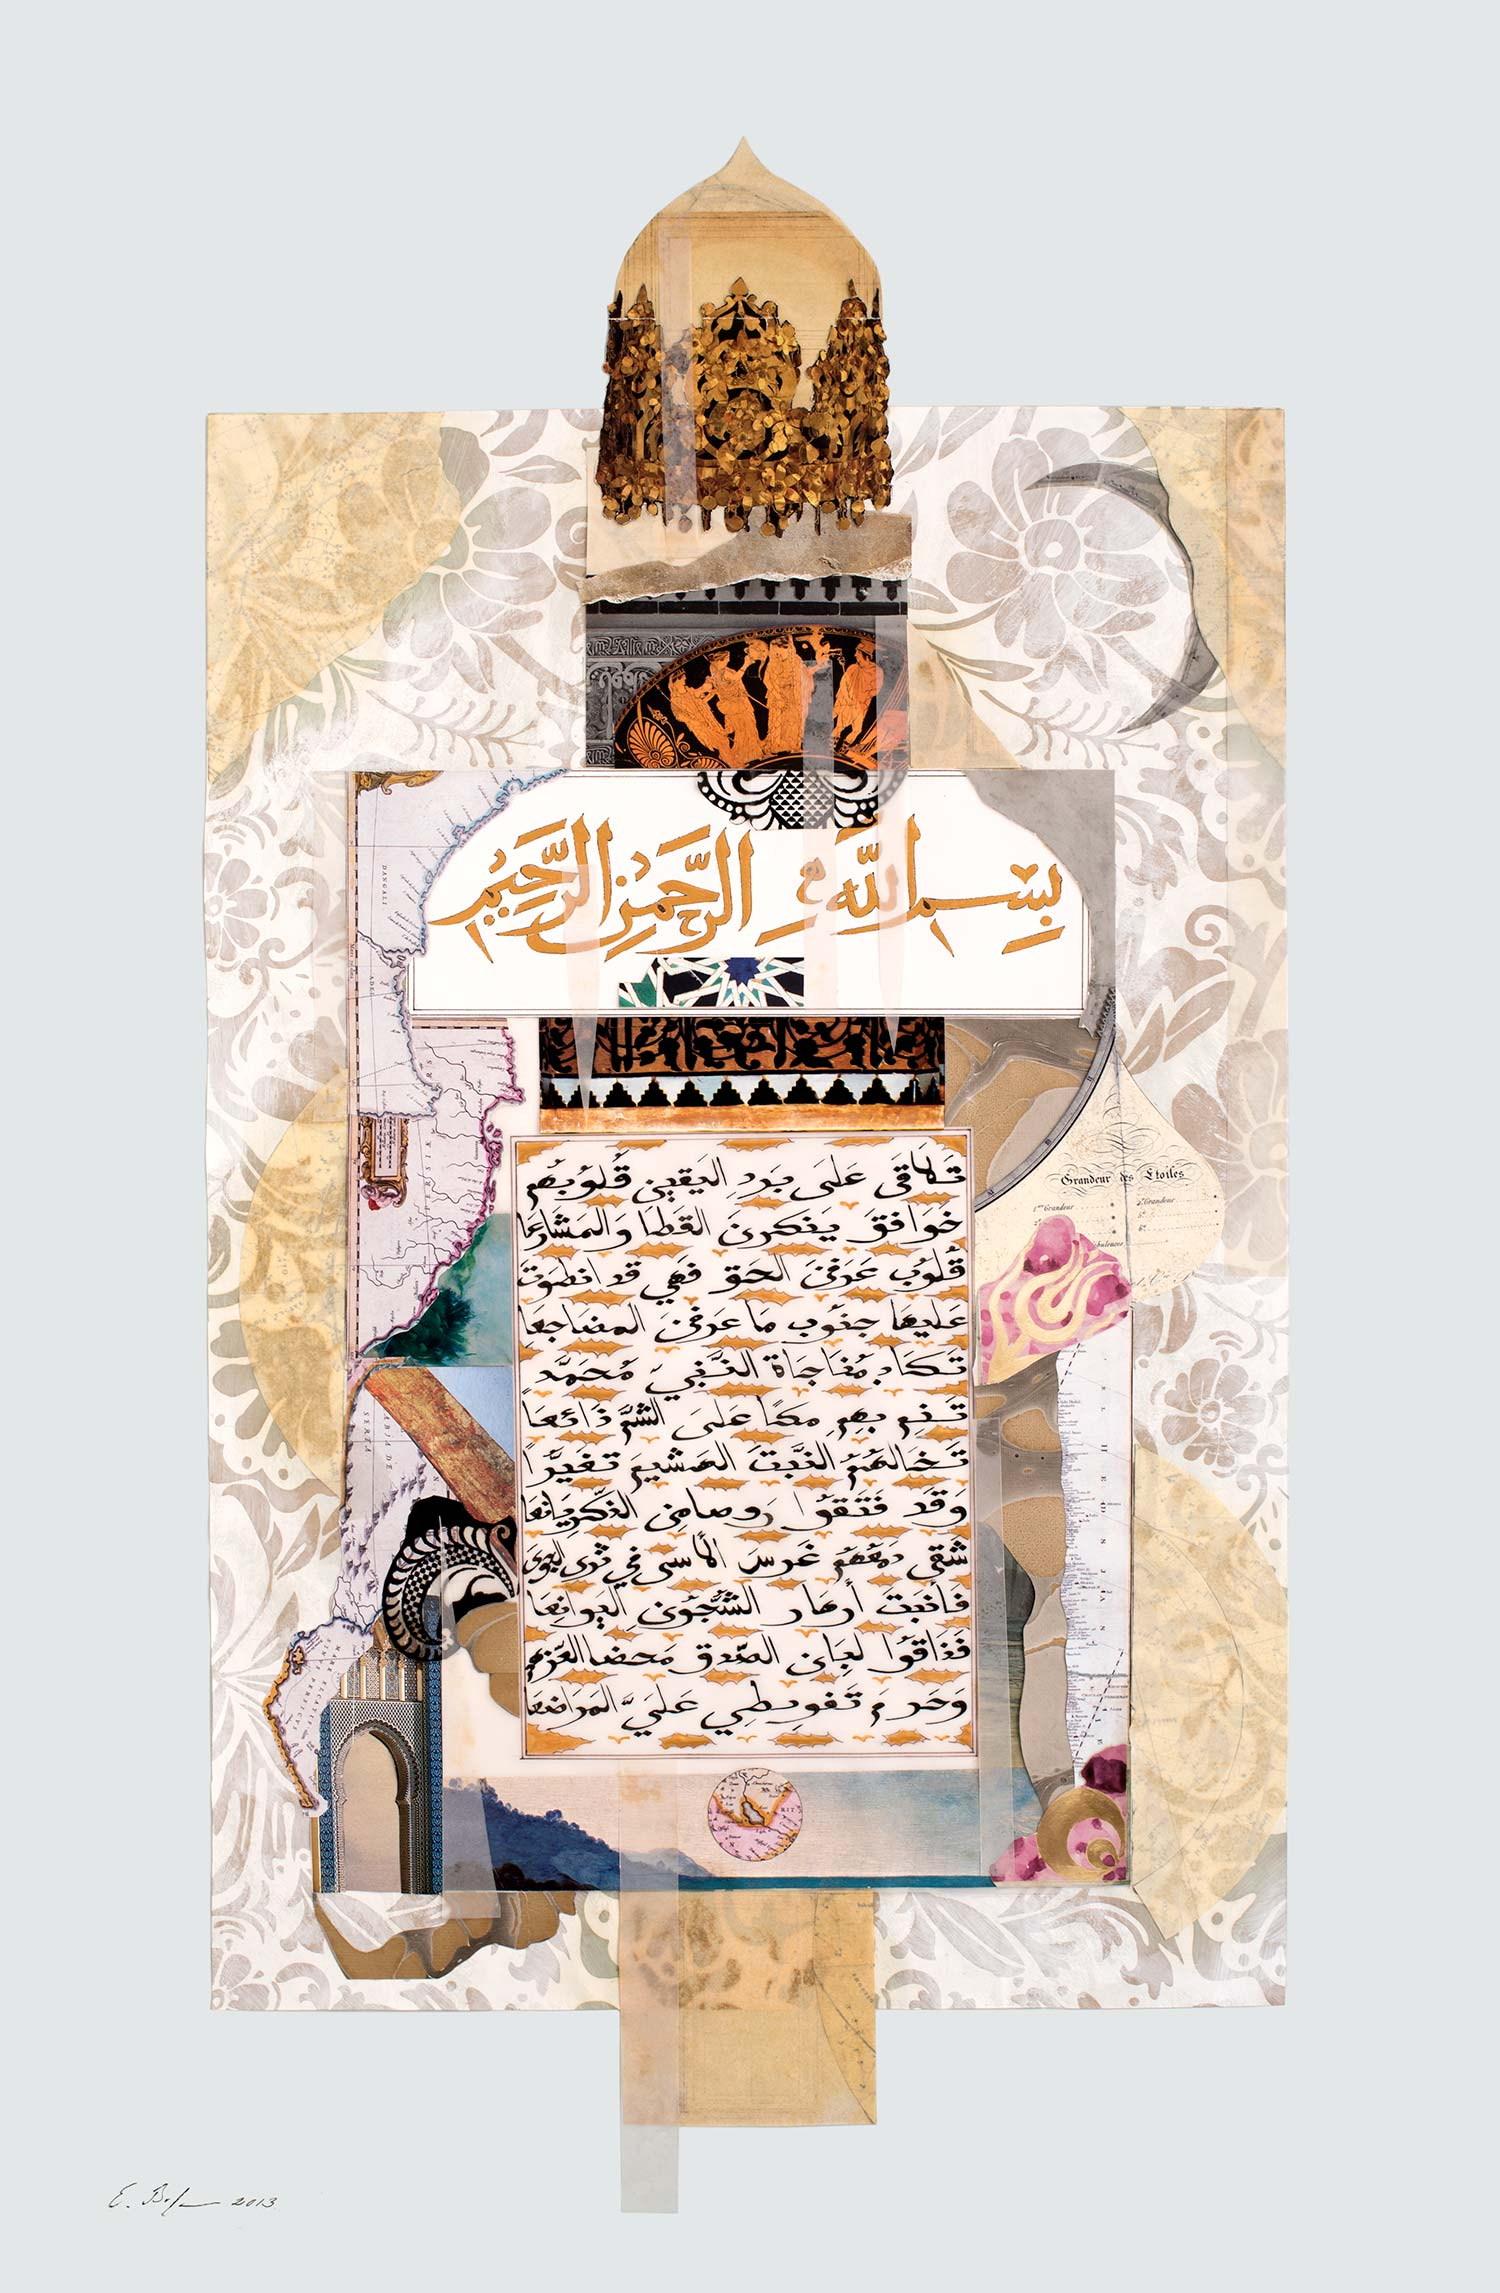 The Pilgrimage from Al Andalus to Arabia II  Private Collection HRH Prince Sultan bin Salman, Kingdom of Saudi Arabia Paper, stucco, Chinese ink and gold paint on hand painted solid mount board base 100 x 55 cm 2013